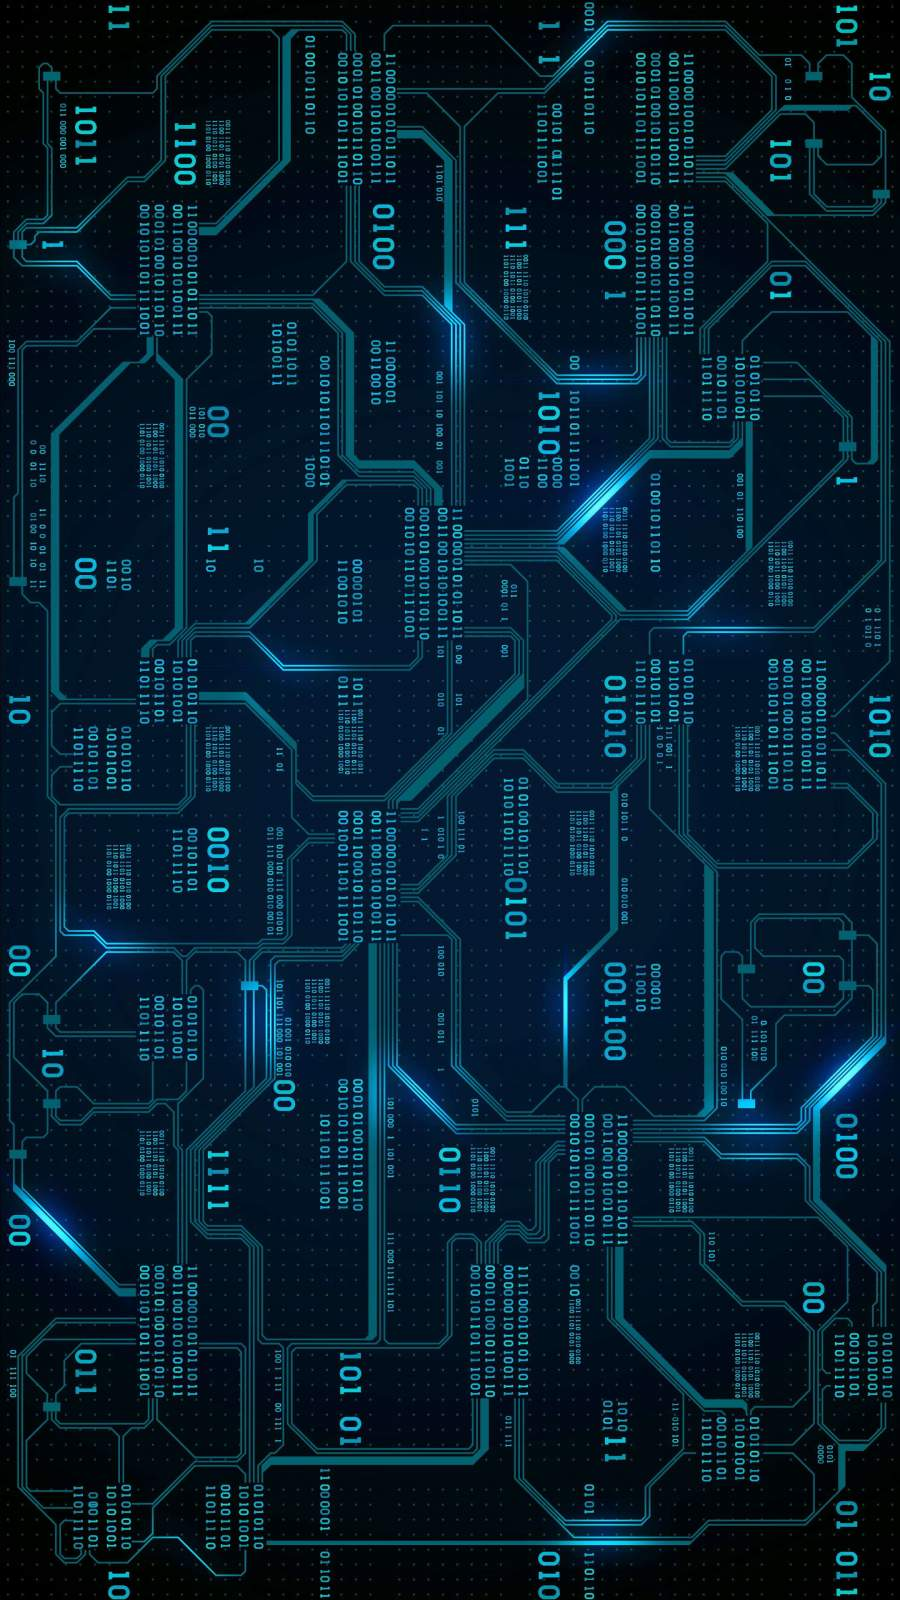 Digital Circuit Board iPhone Wallpaper